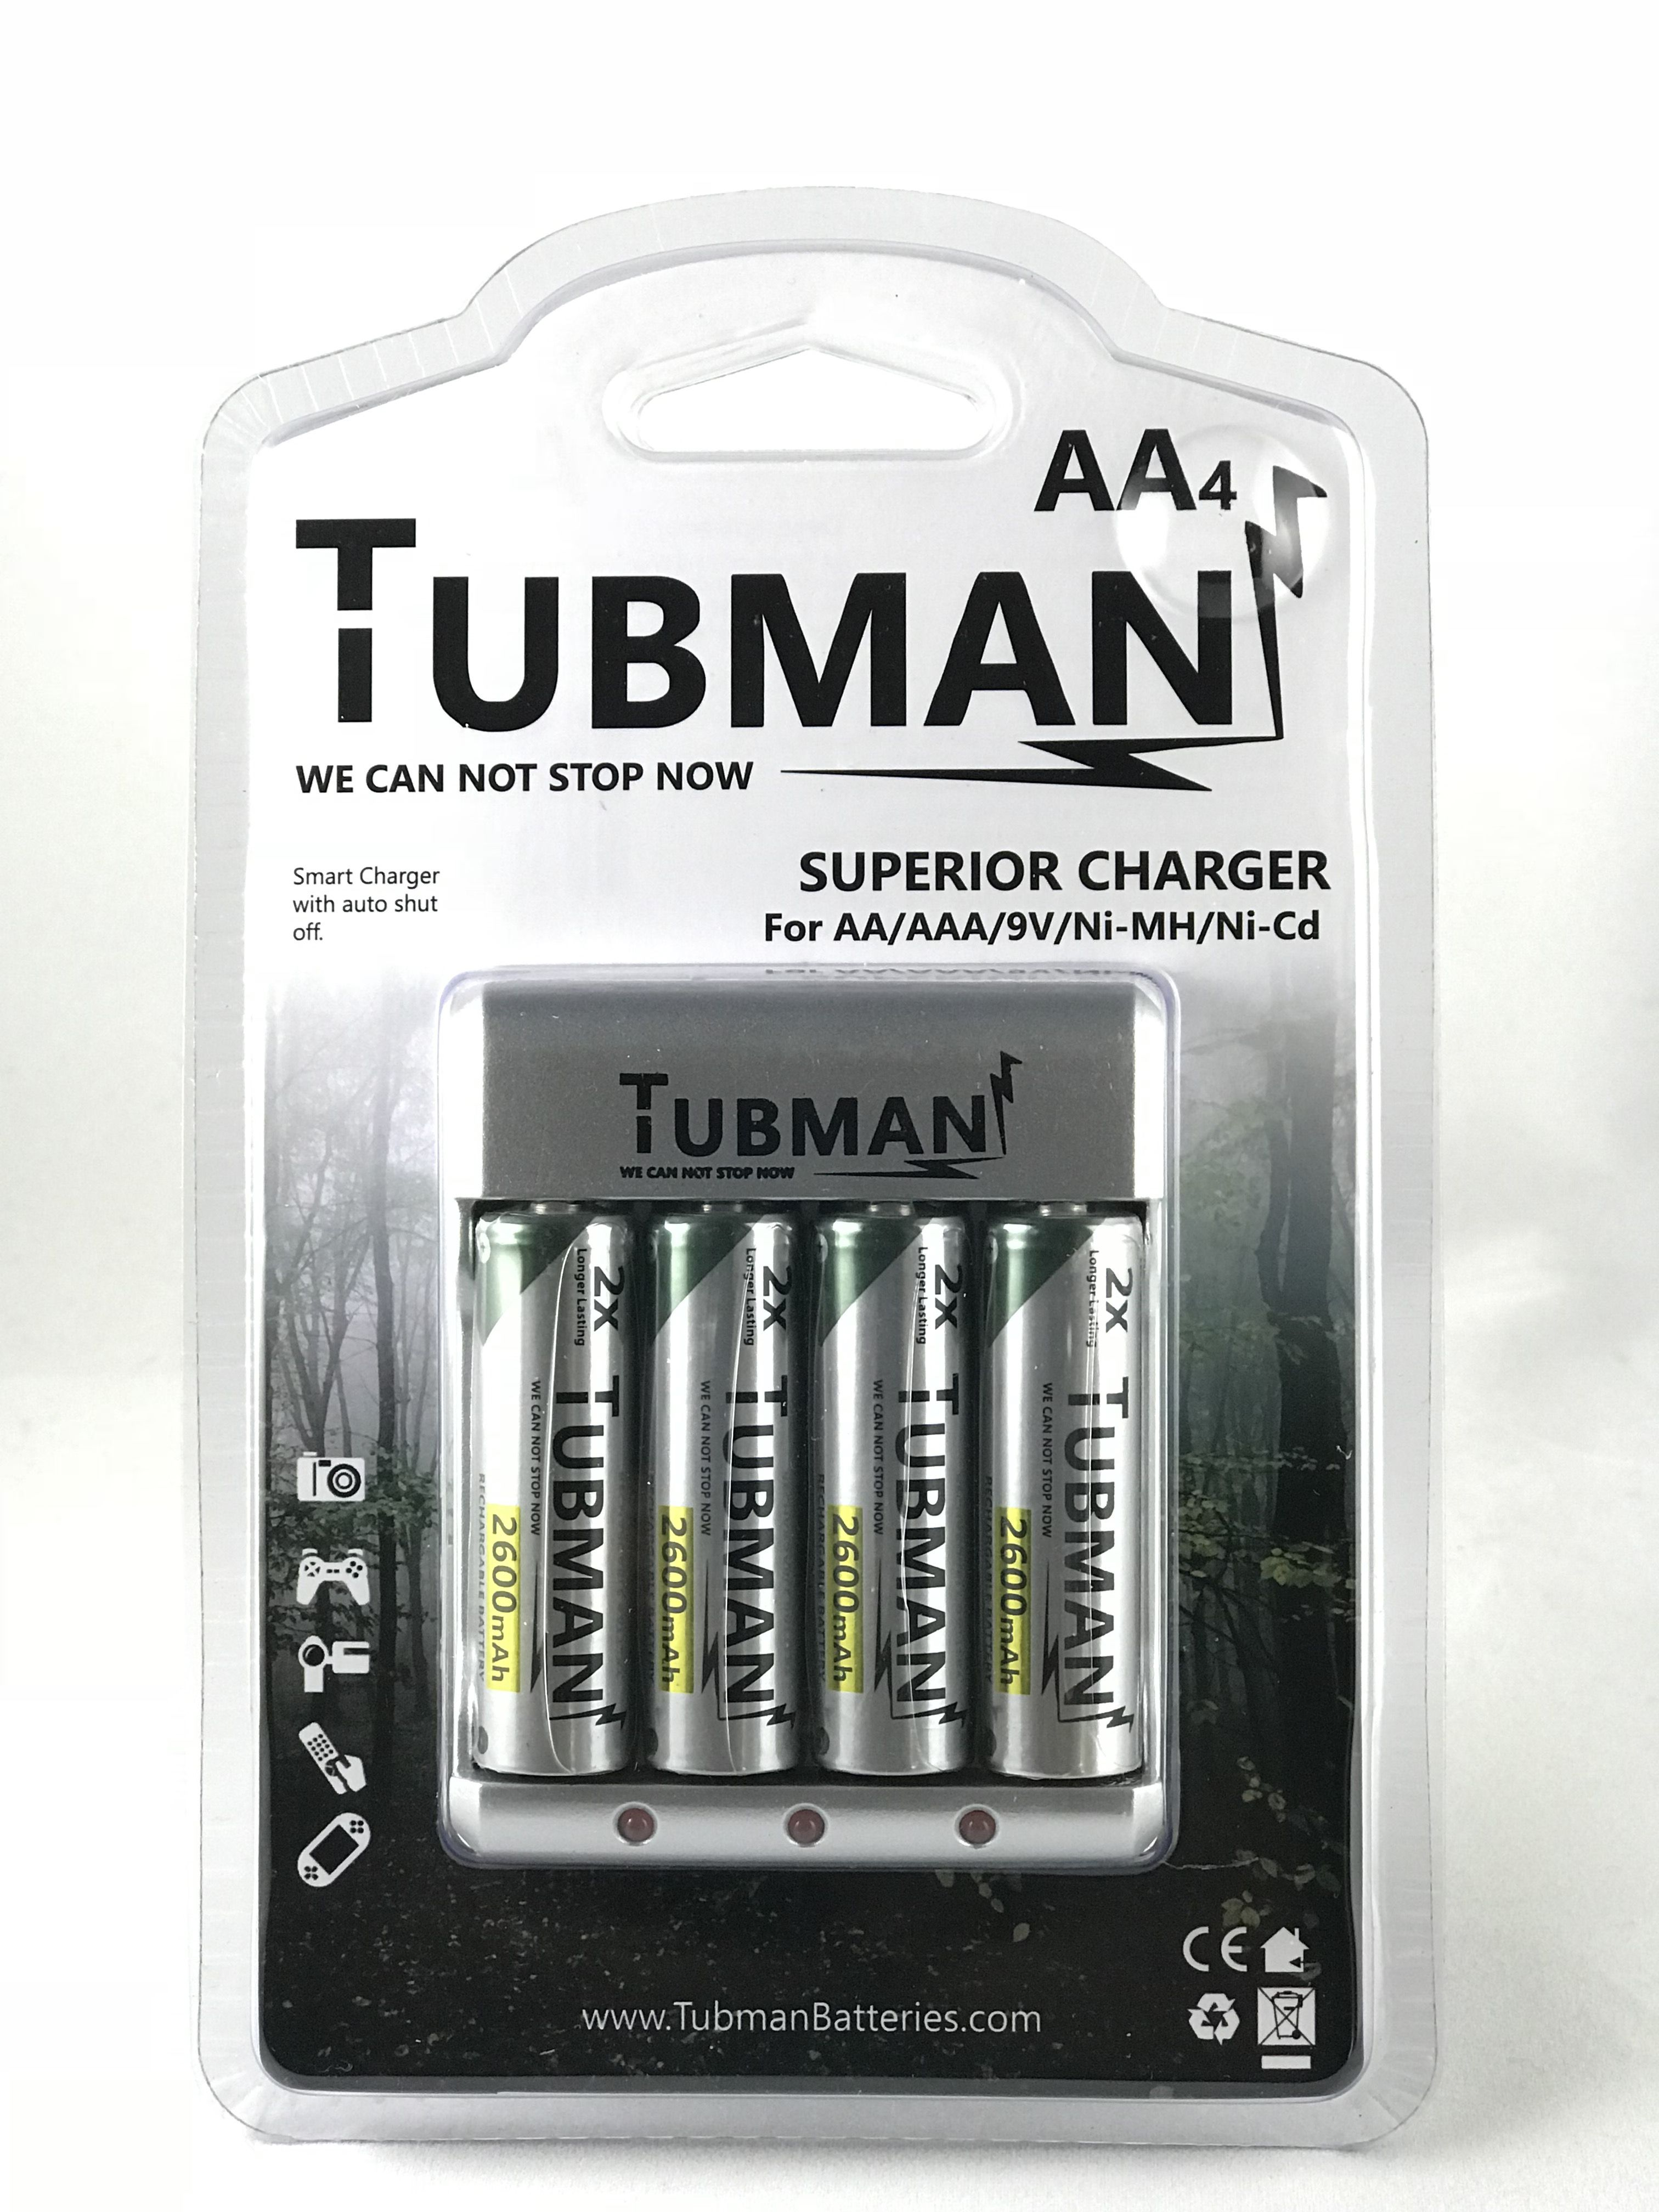 Tubman Battery 4 Aa Rechargeable Batteries With Charger Rechargeable Batteries Charger Batteries